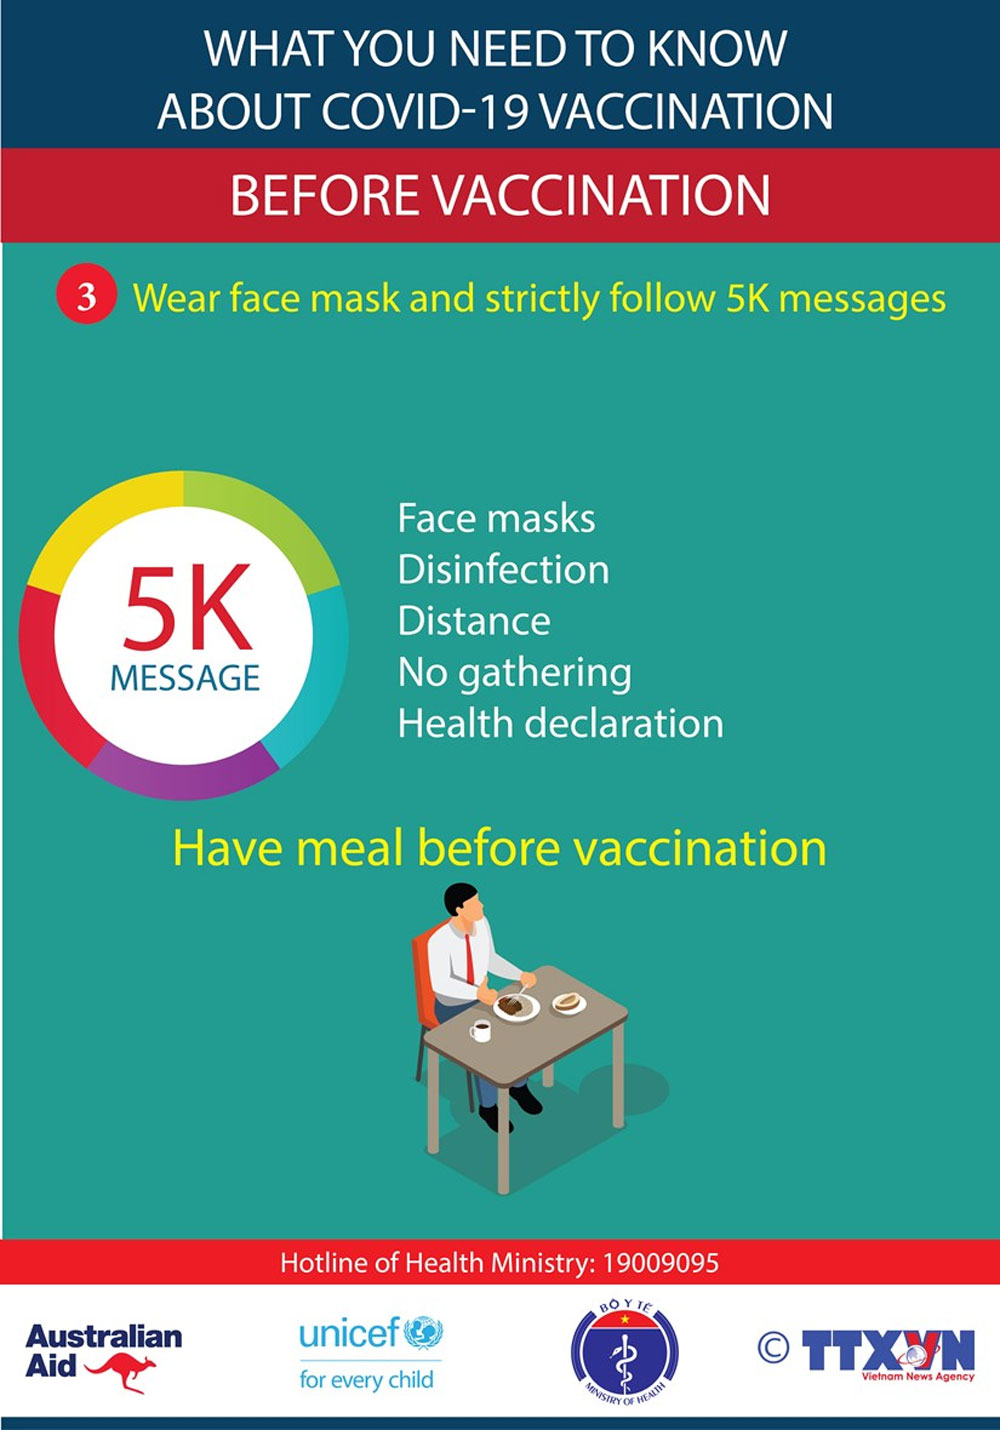 need to know, Covid-19 vaccination, wear face mask, 5K messages